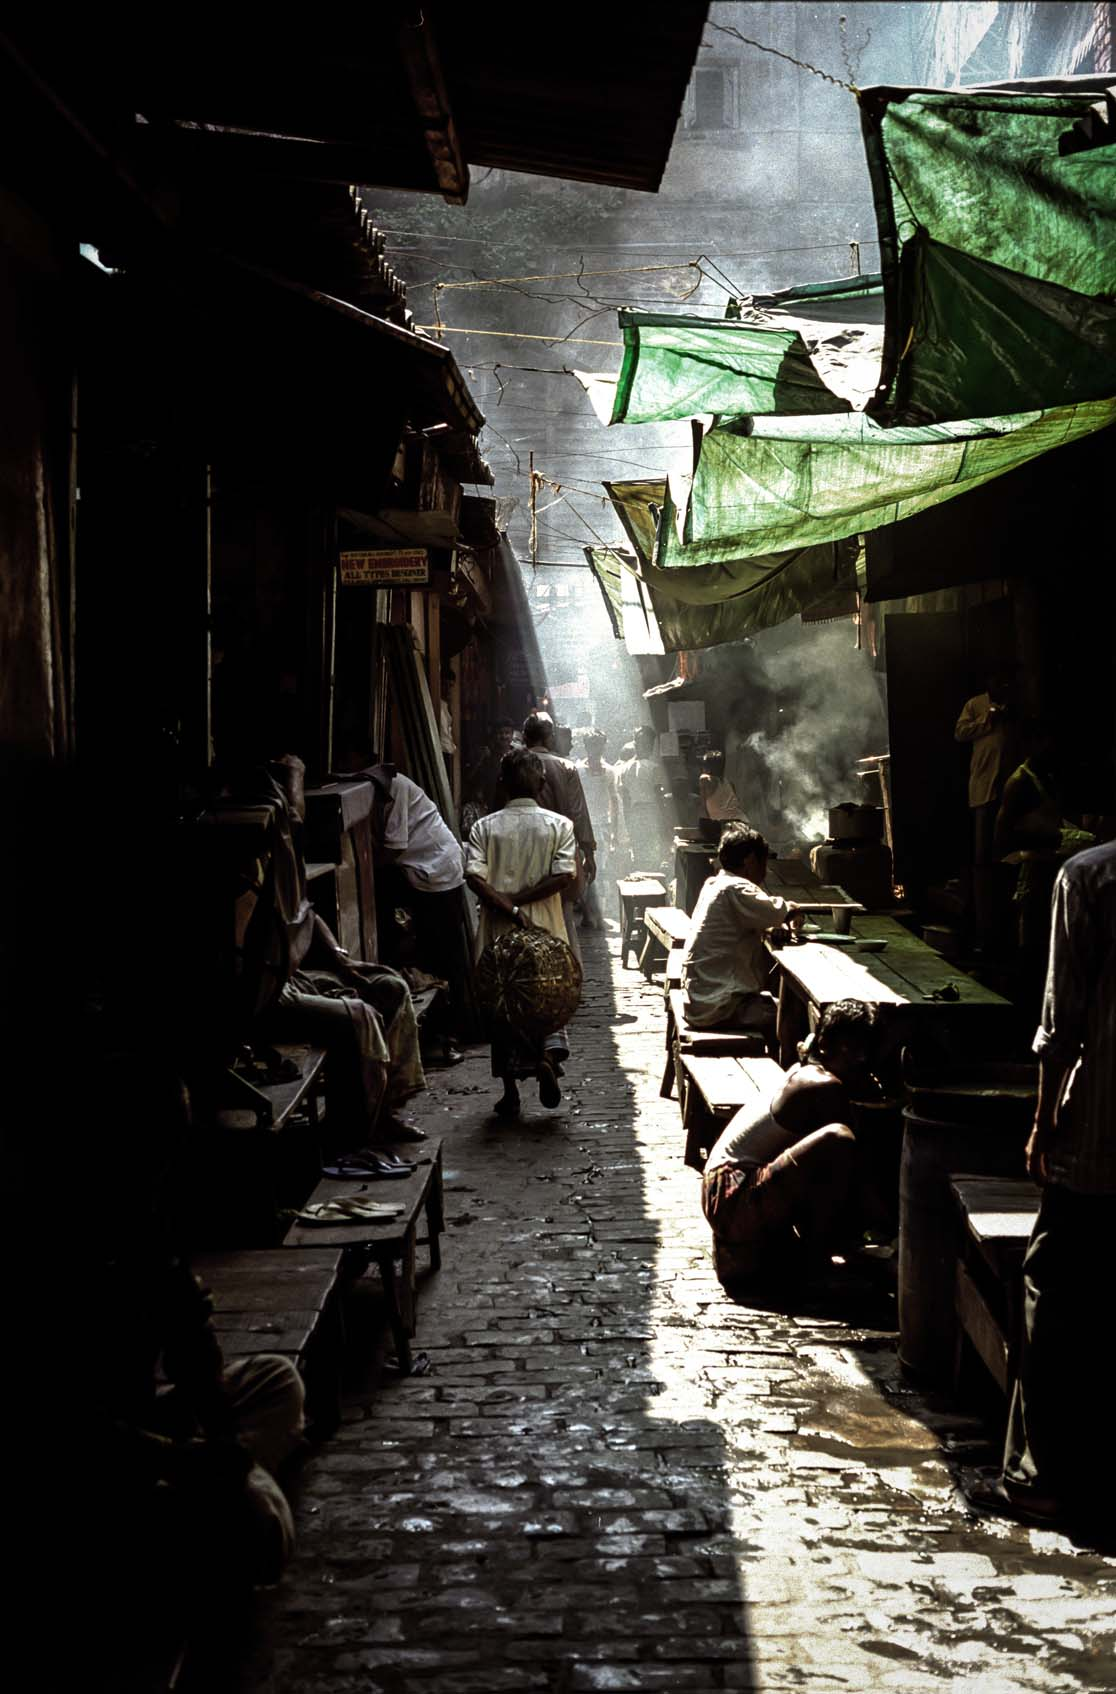 Backstreet market, Calcutta